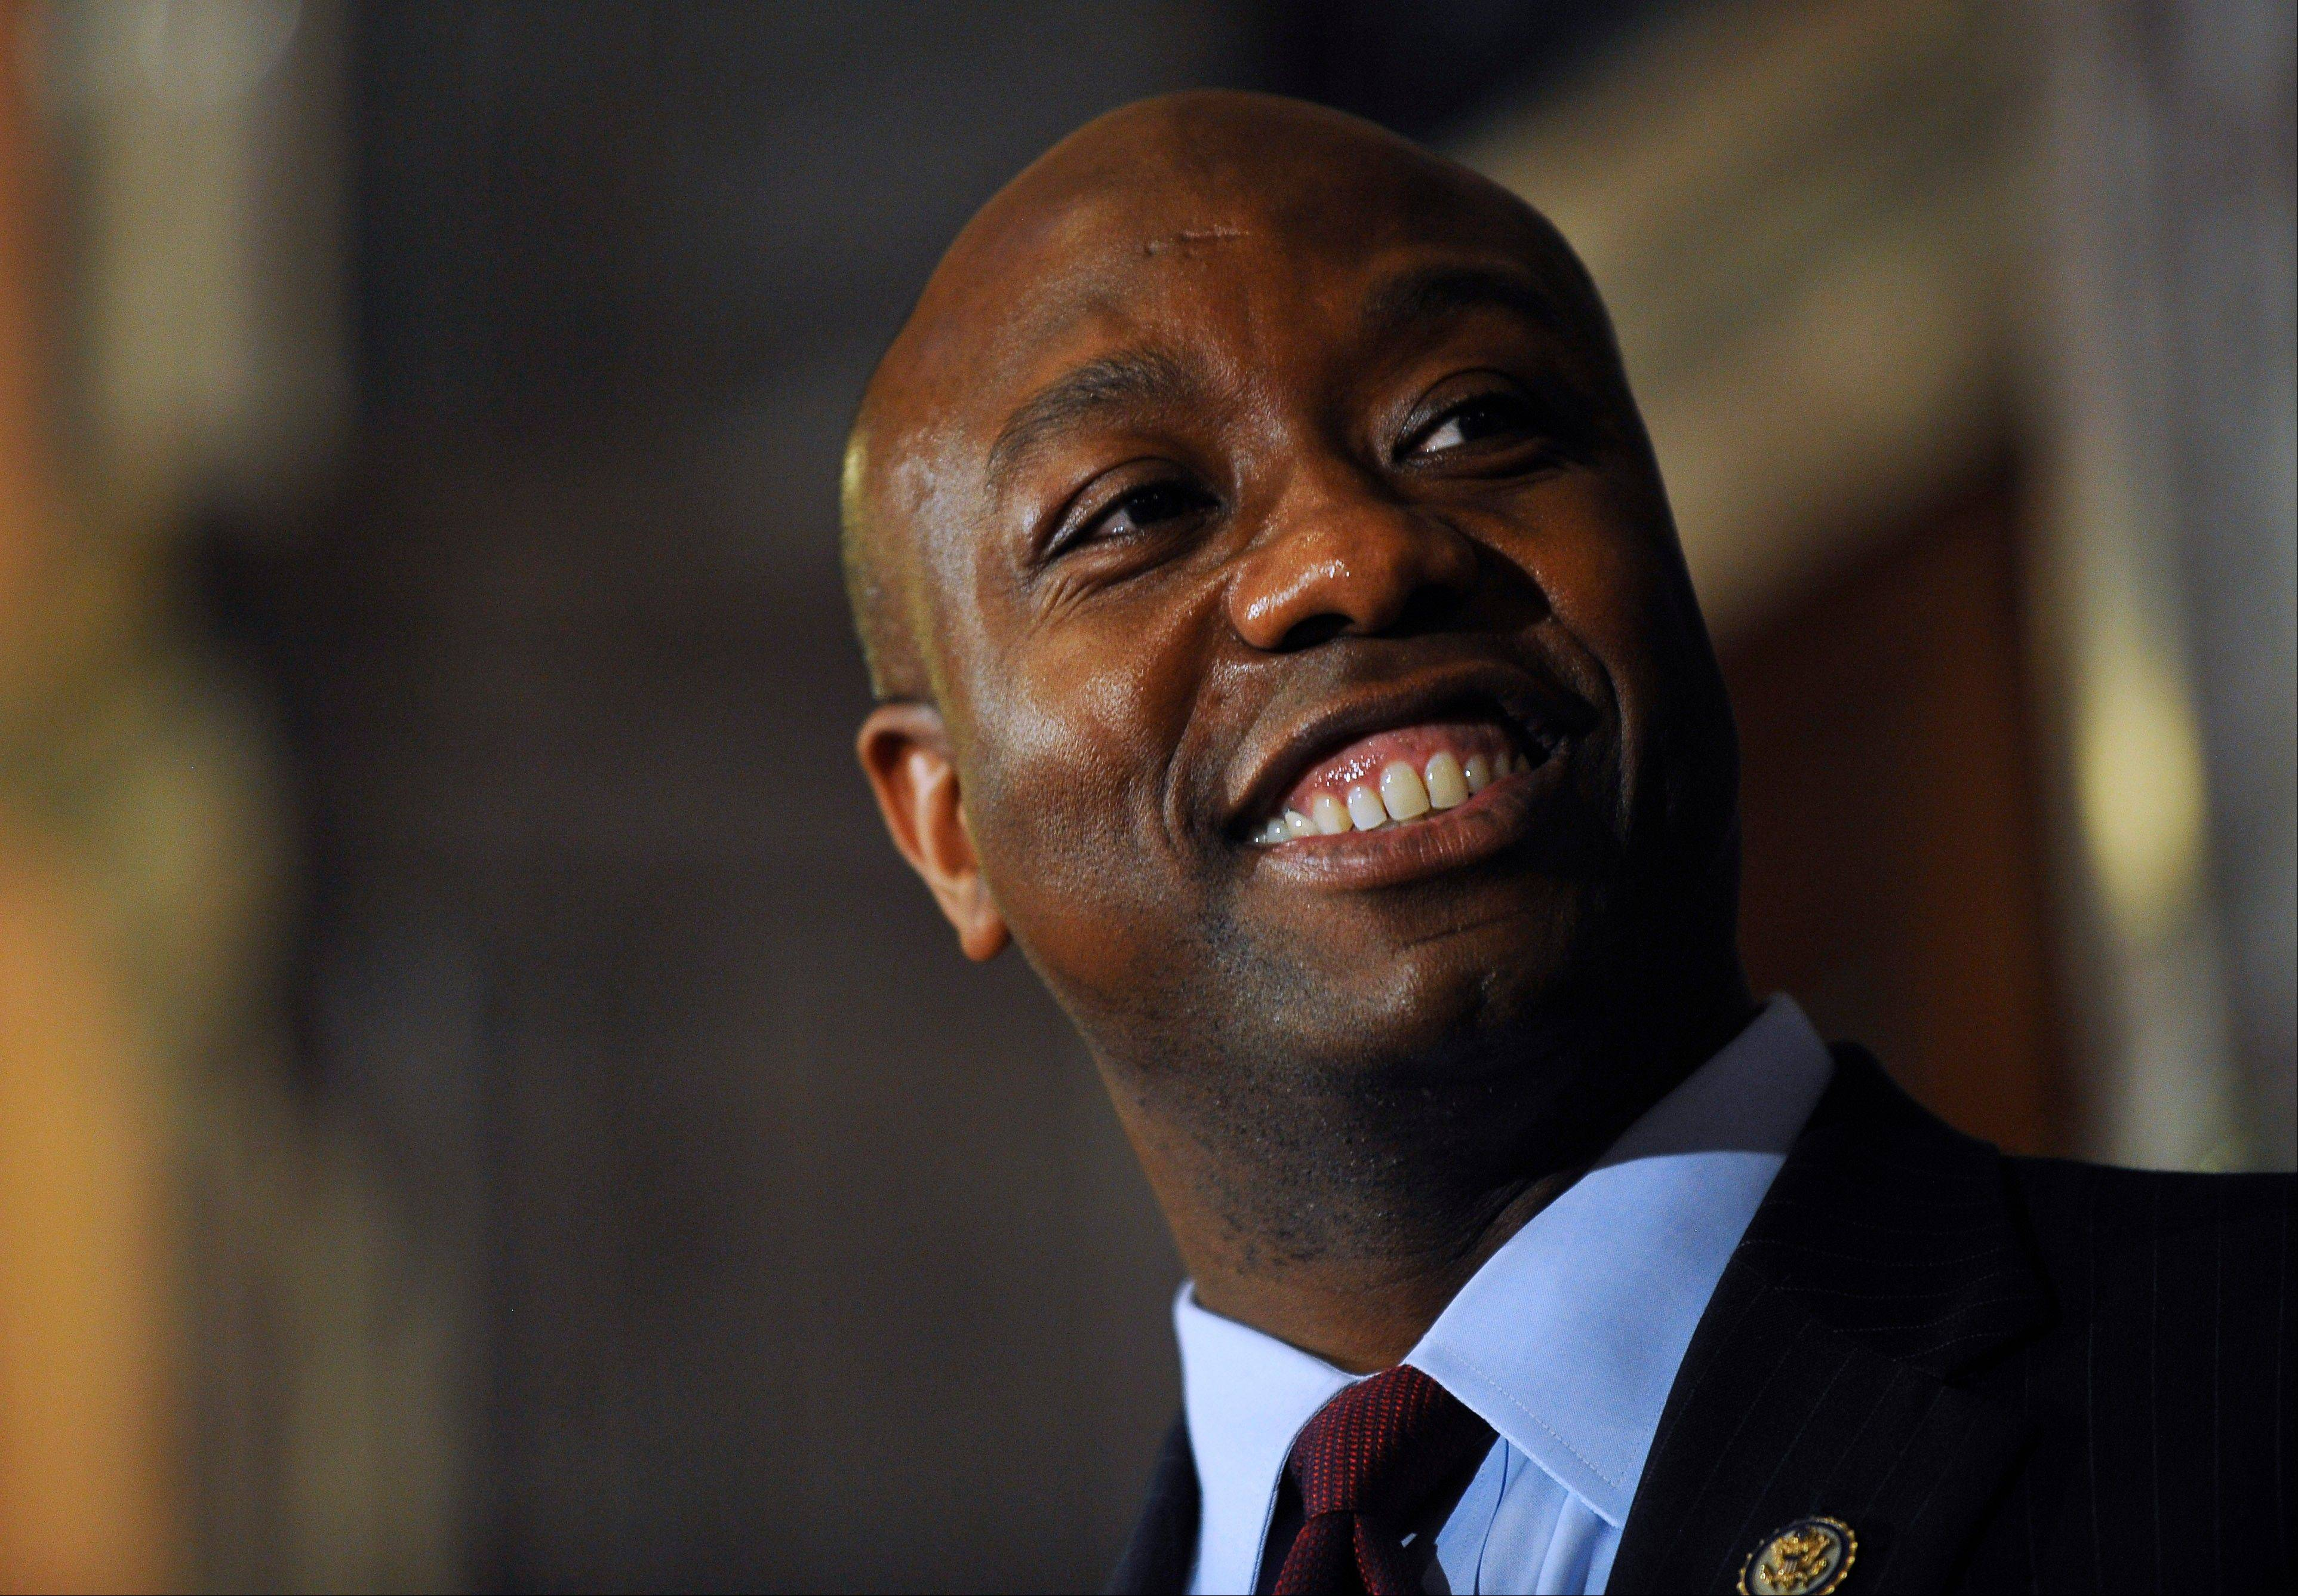 U.S. Rep. Tim Scott smiles during a press conference announcing him as Jim DeMint's replacement in the U.S. Senate at the South Carolina Statehouse on Monday, Dec. 17, 2012, in Columbia, S.C. South Carolina Gov. Nikki Haley announced Scott, as Sen. Jim DeMint's replacement, making him the only black Republican in Congress and the South's first black Republican senator since Reconstruction.